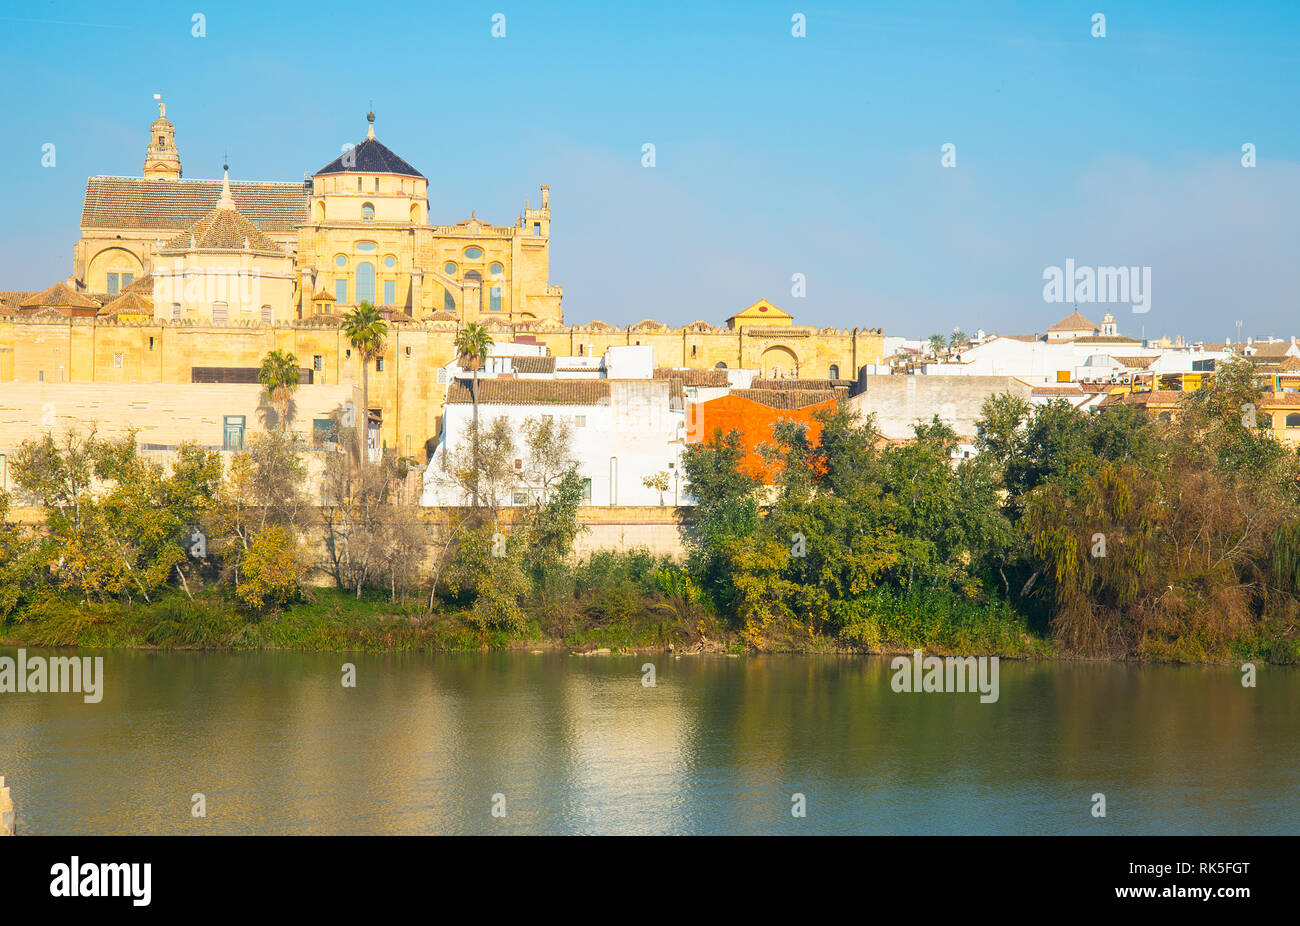 River Guadalquivir and Mosque Cathedral. Cordoba, Spain. Stock Photo